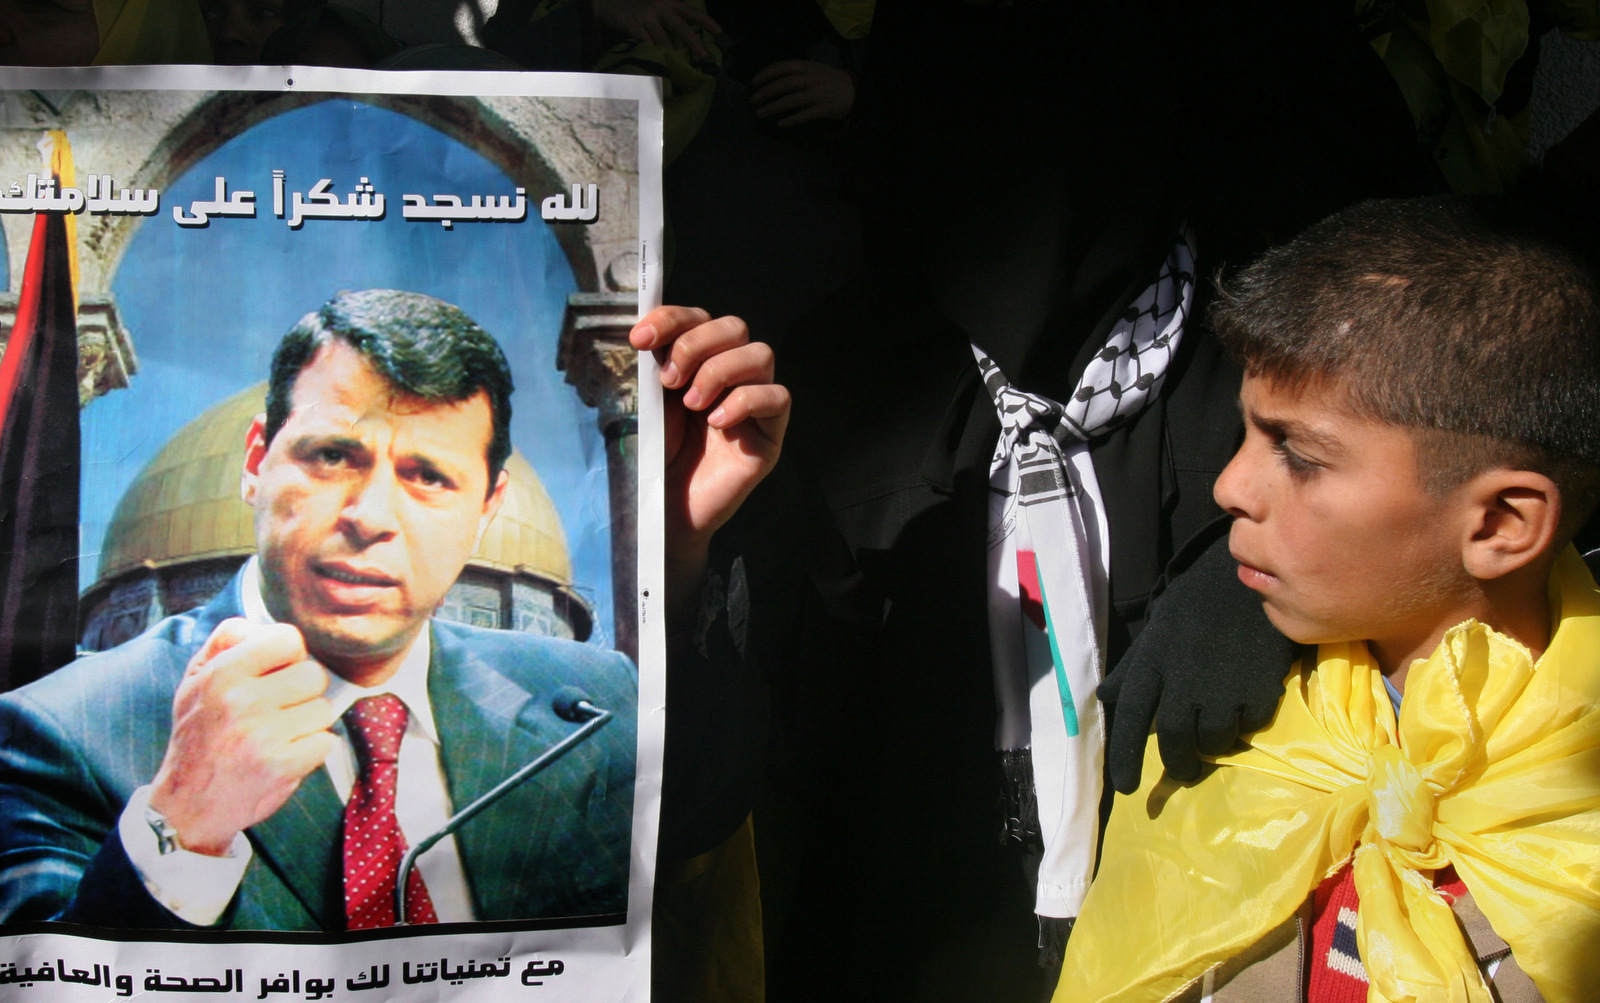 A Palestinian boy looks at a poster of Fatah leader Mohammed Dahlan during a rally in support of him in Gaza City, Dec. 16, 2006. (AP/Hatem Moussa)